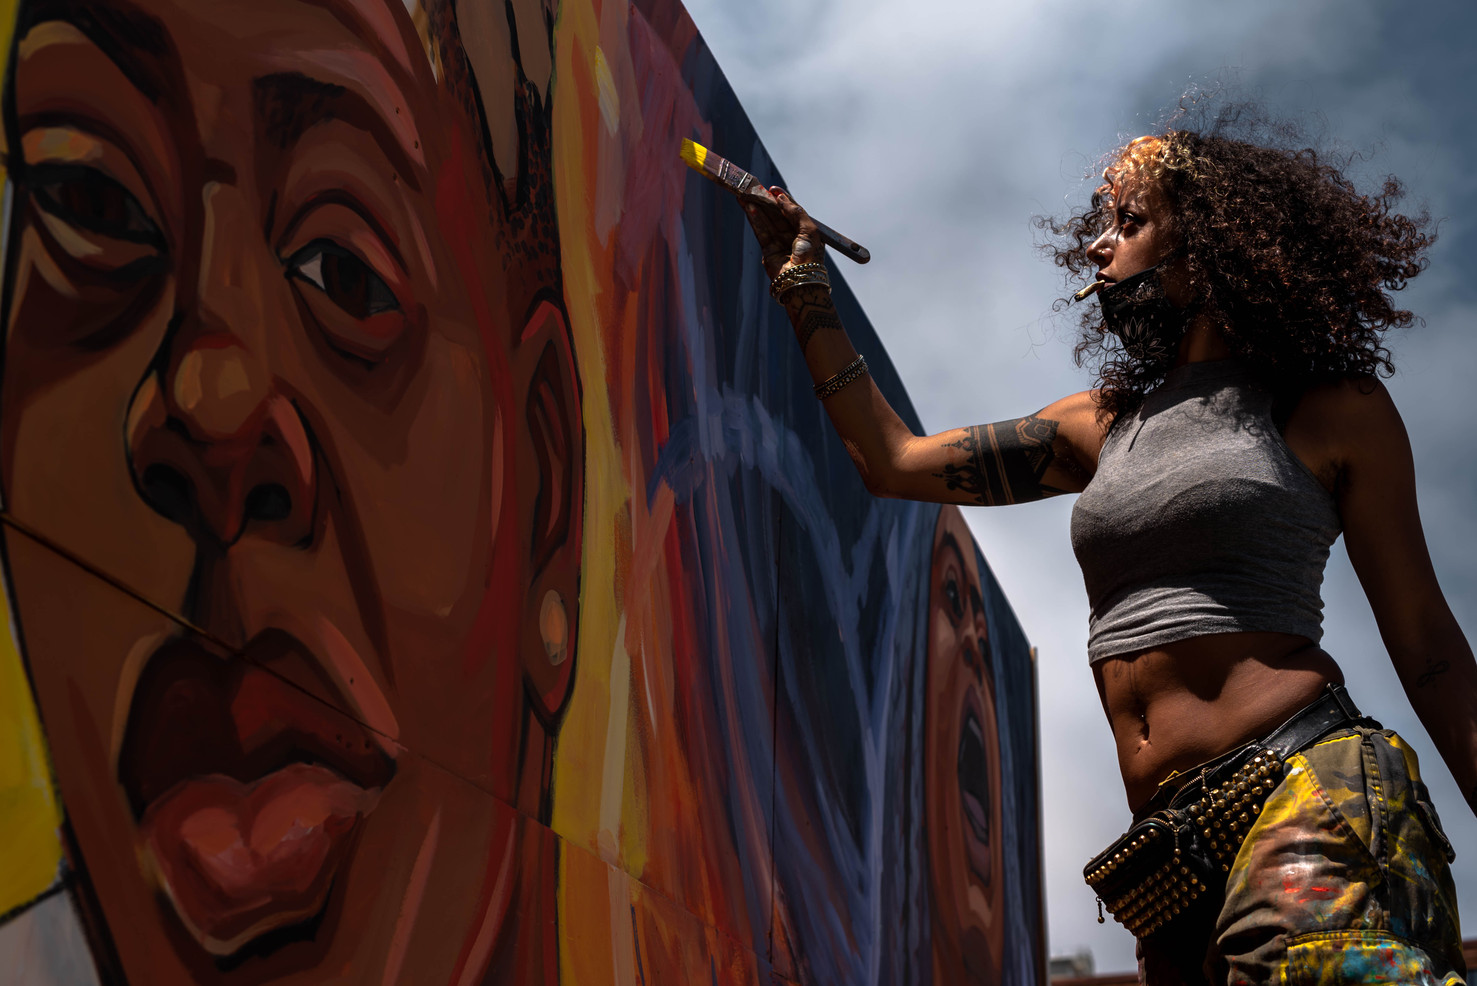 """""""For those who passed to move peacefully to the other side and that we make the world safer and more loving. So those who are with us may thrive in their full expression."""" - Oakland artist Rachel Wolfe Goldstein paints and dedicates her work to trans individuals during a Juneteenth festival highlighting black artists held by the African American Art & Culture Complex."""